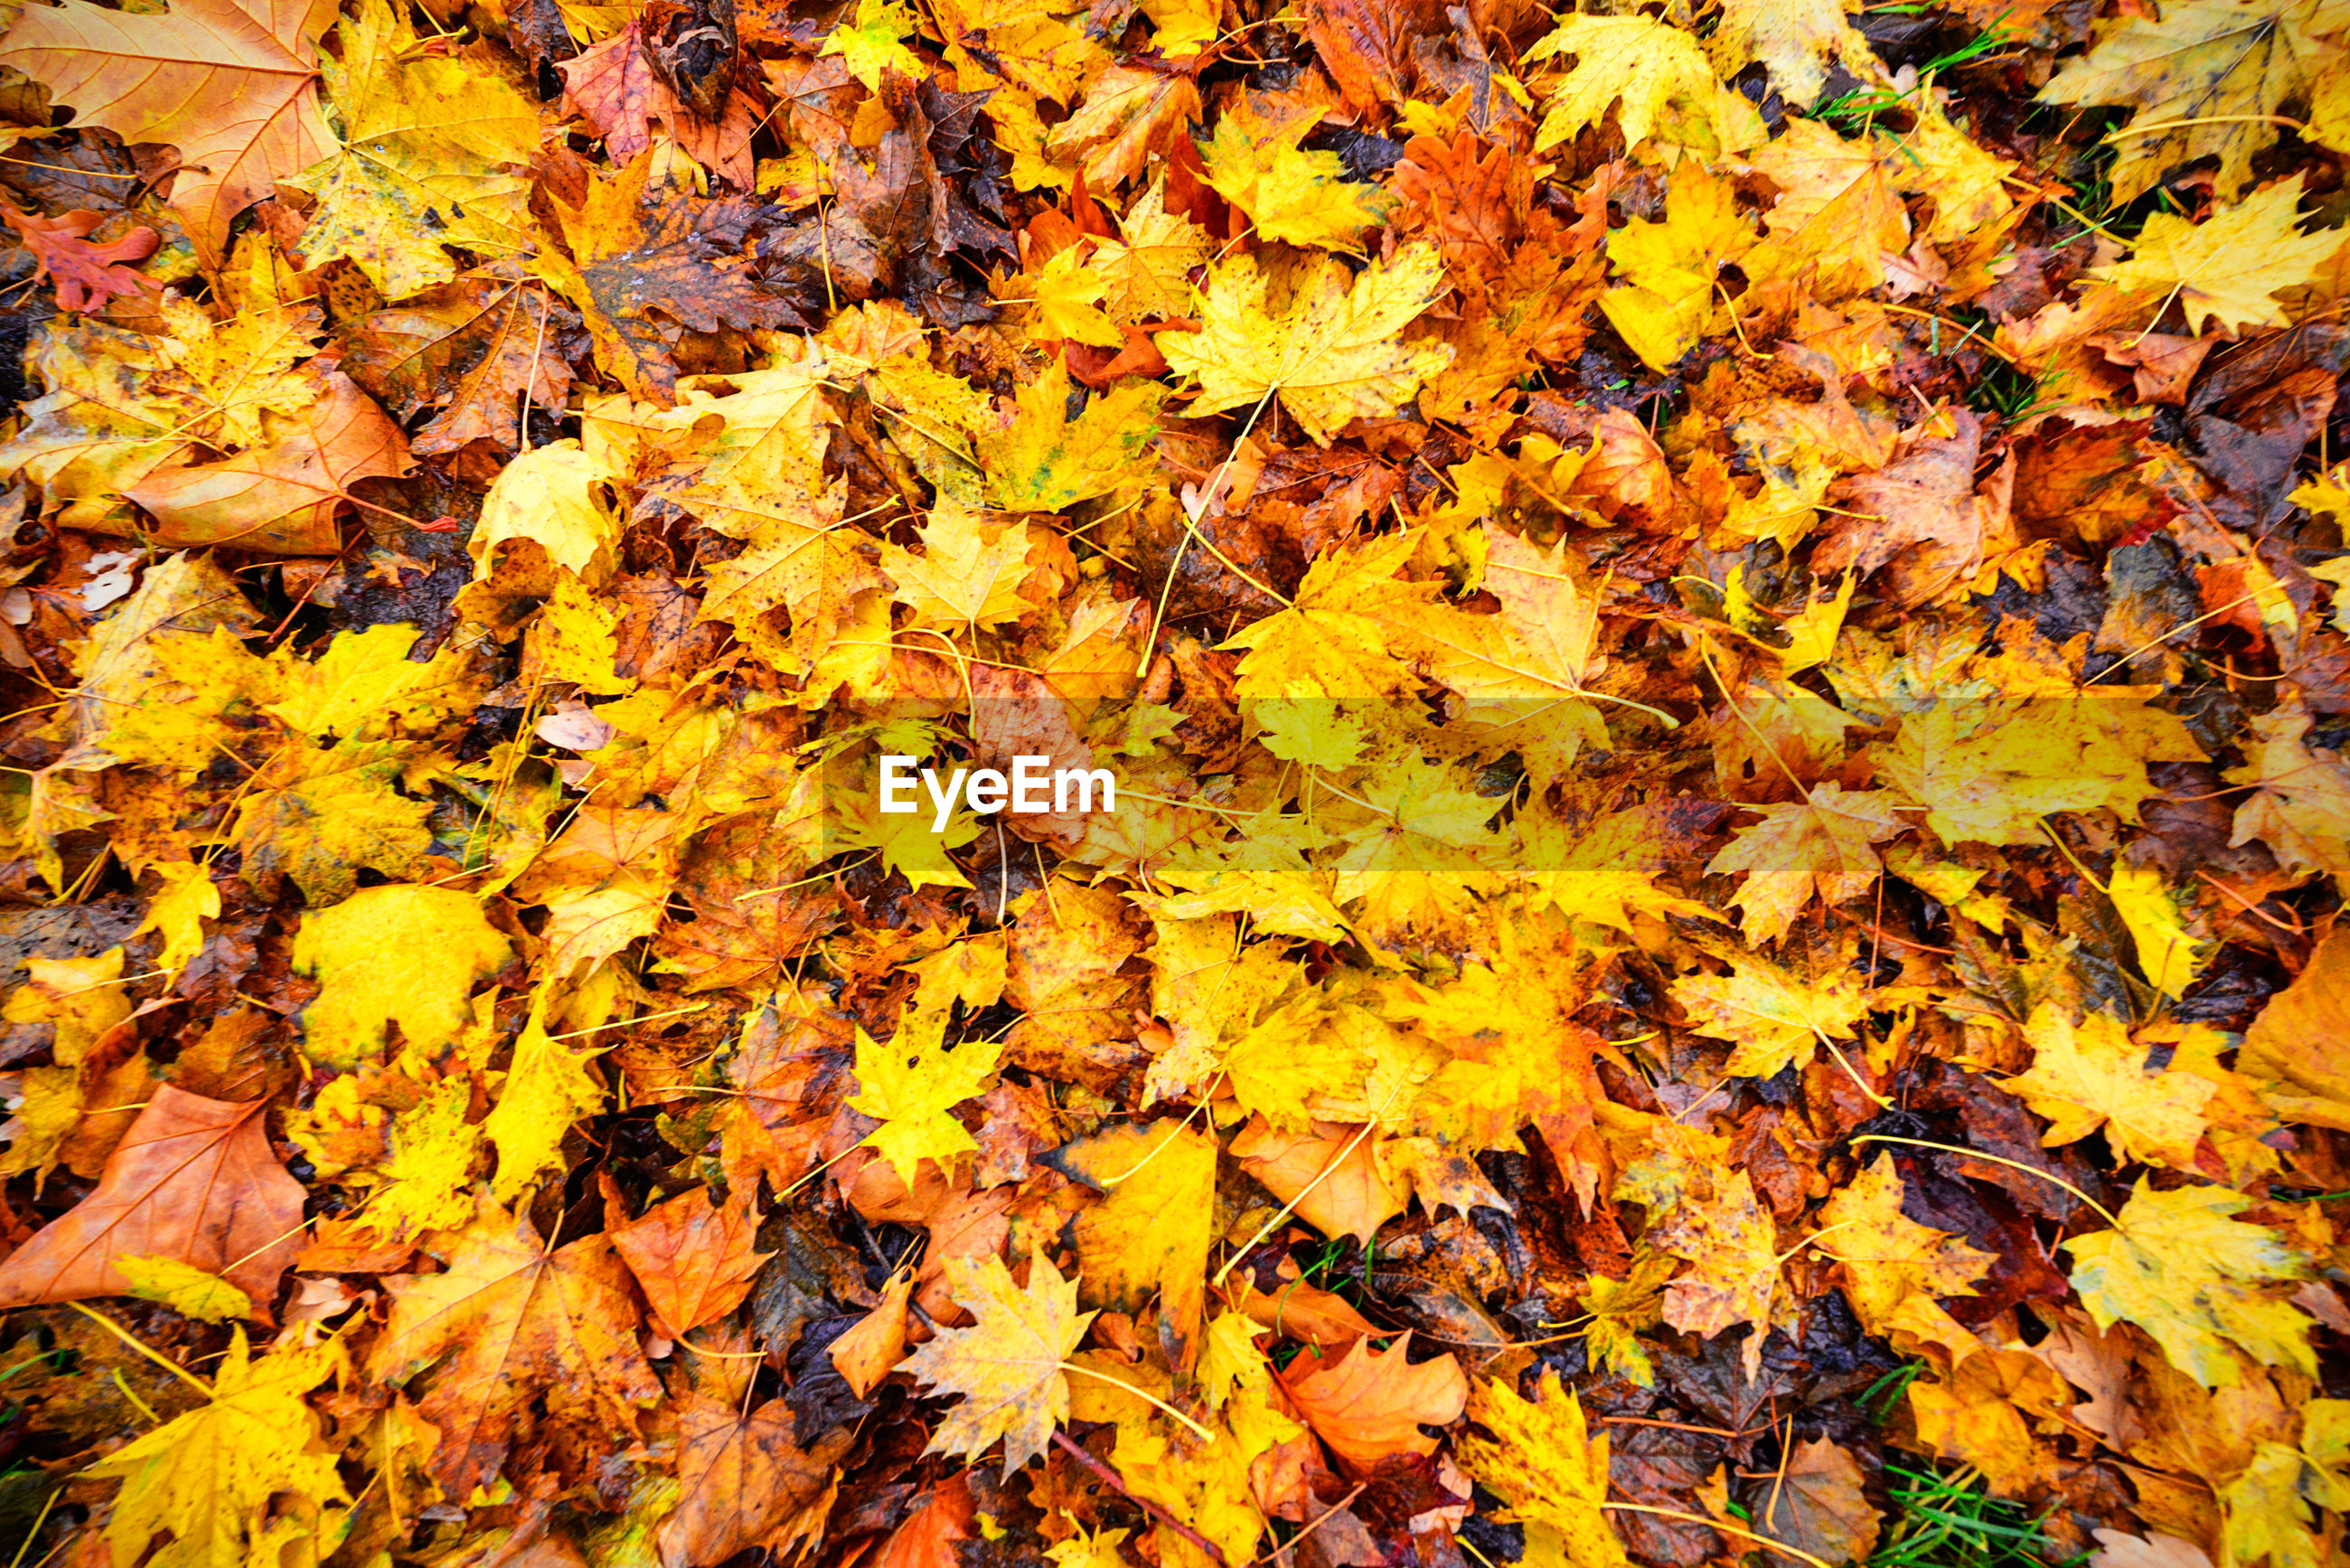 HIGH ANGLE VIEW OF YELLOW MAPLE LEAVES ON AUTUMNAL TREE